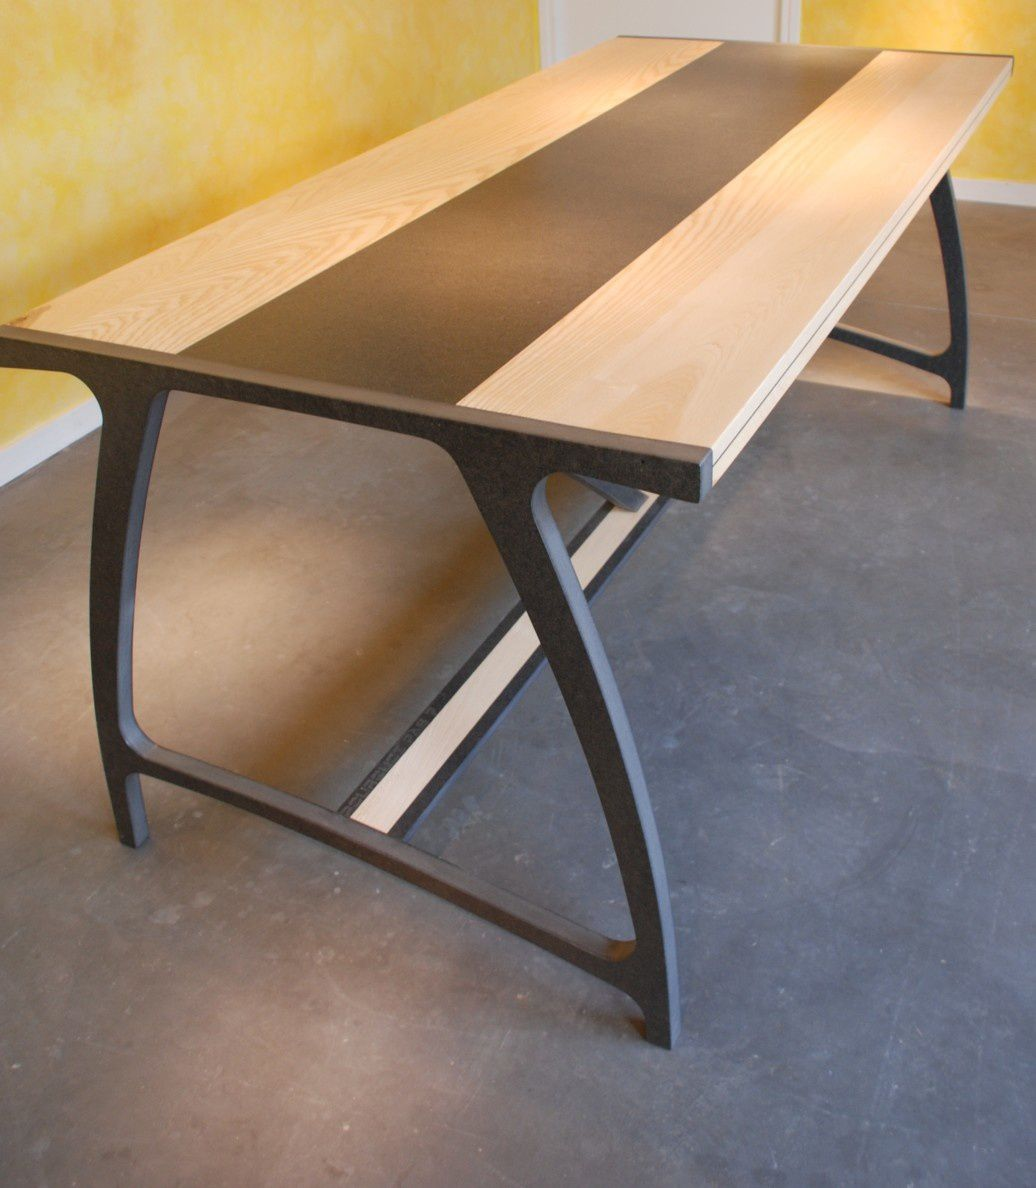 Album table a manger bulle design valchromat atelier - Tables a manger design ...